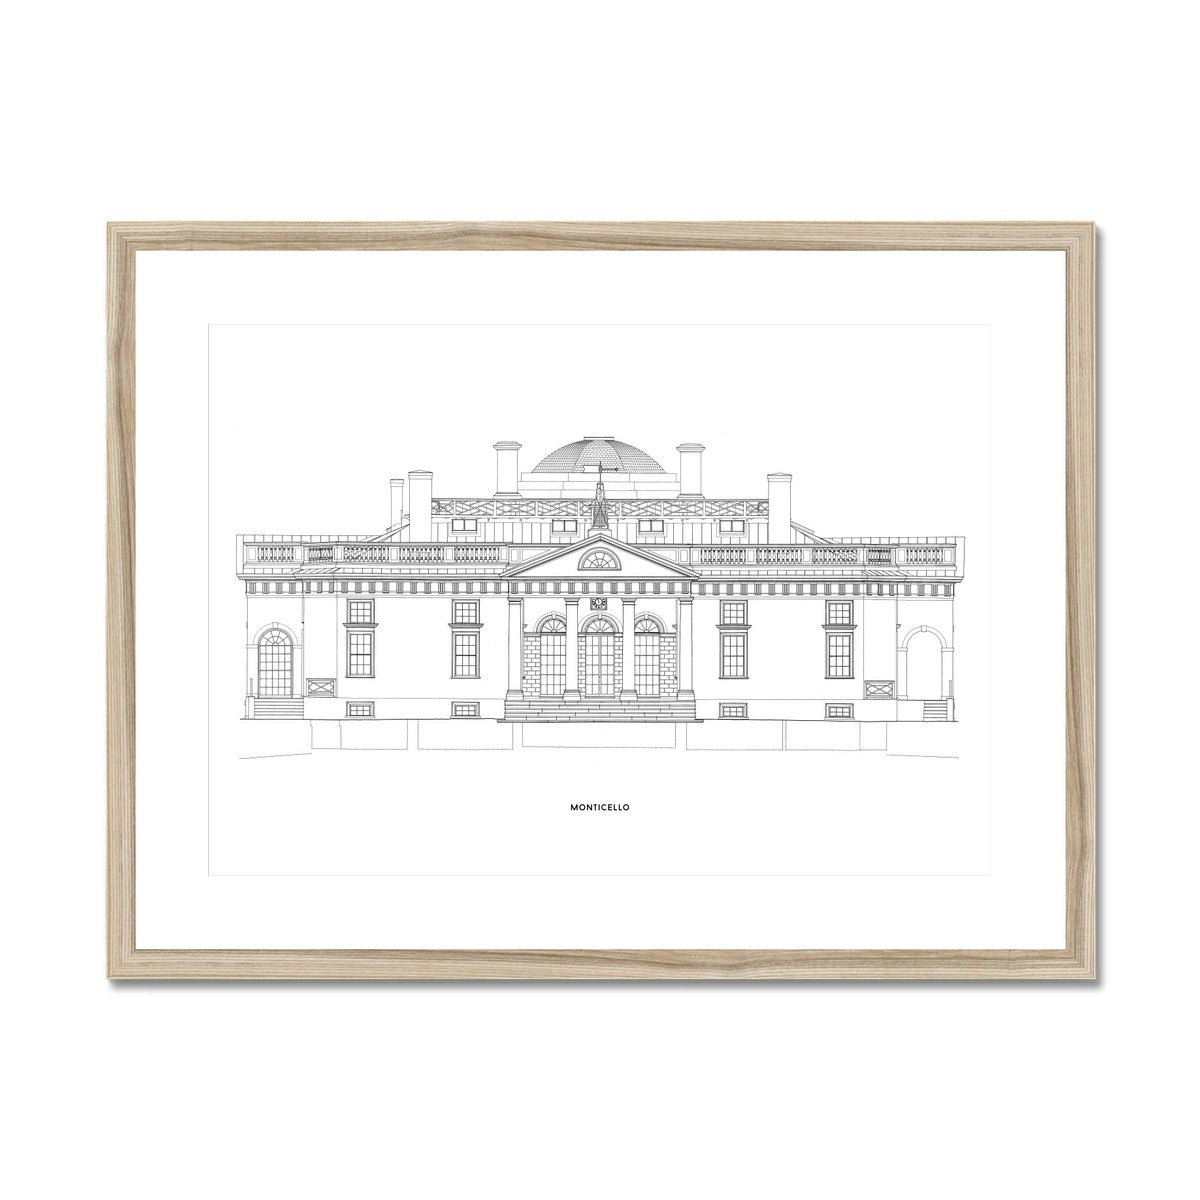 Monticello - East Elevation - White -  Framed & Mounted Print